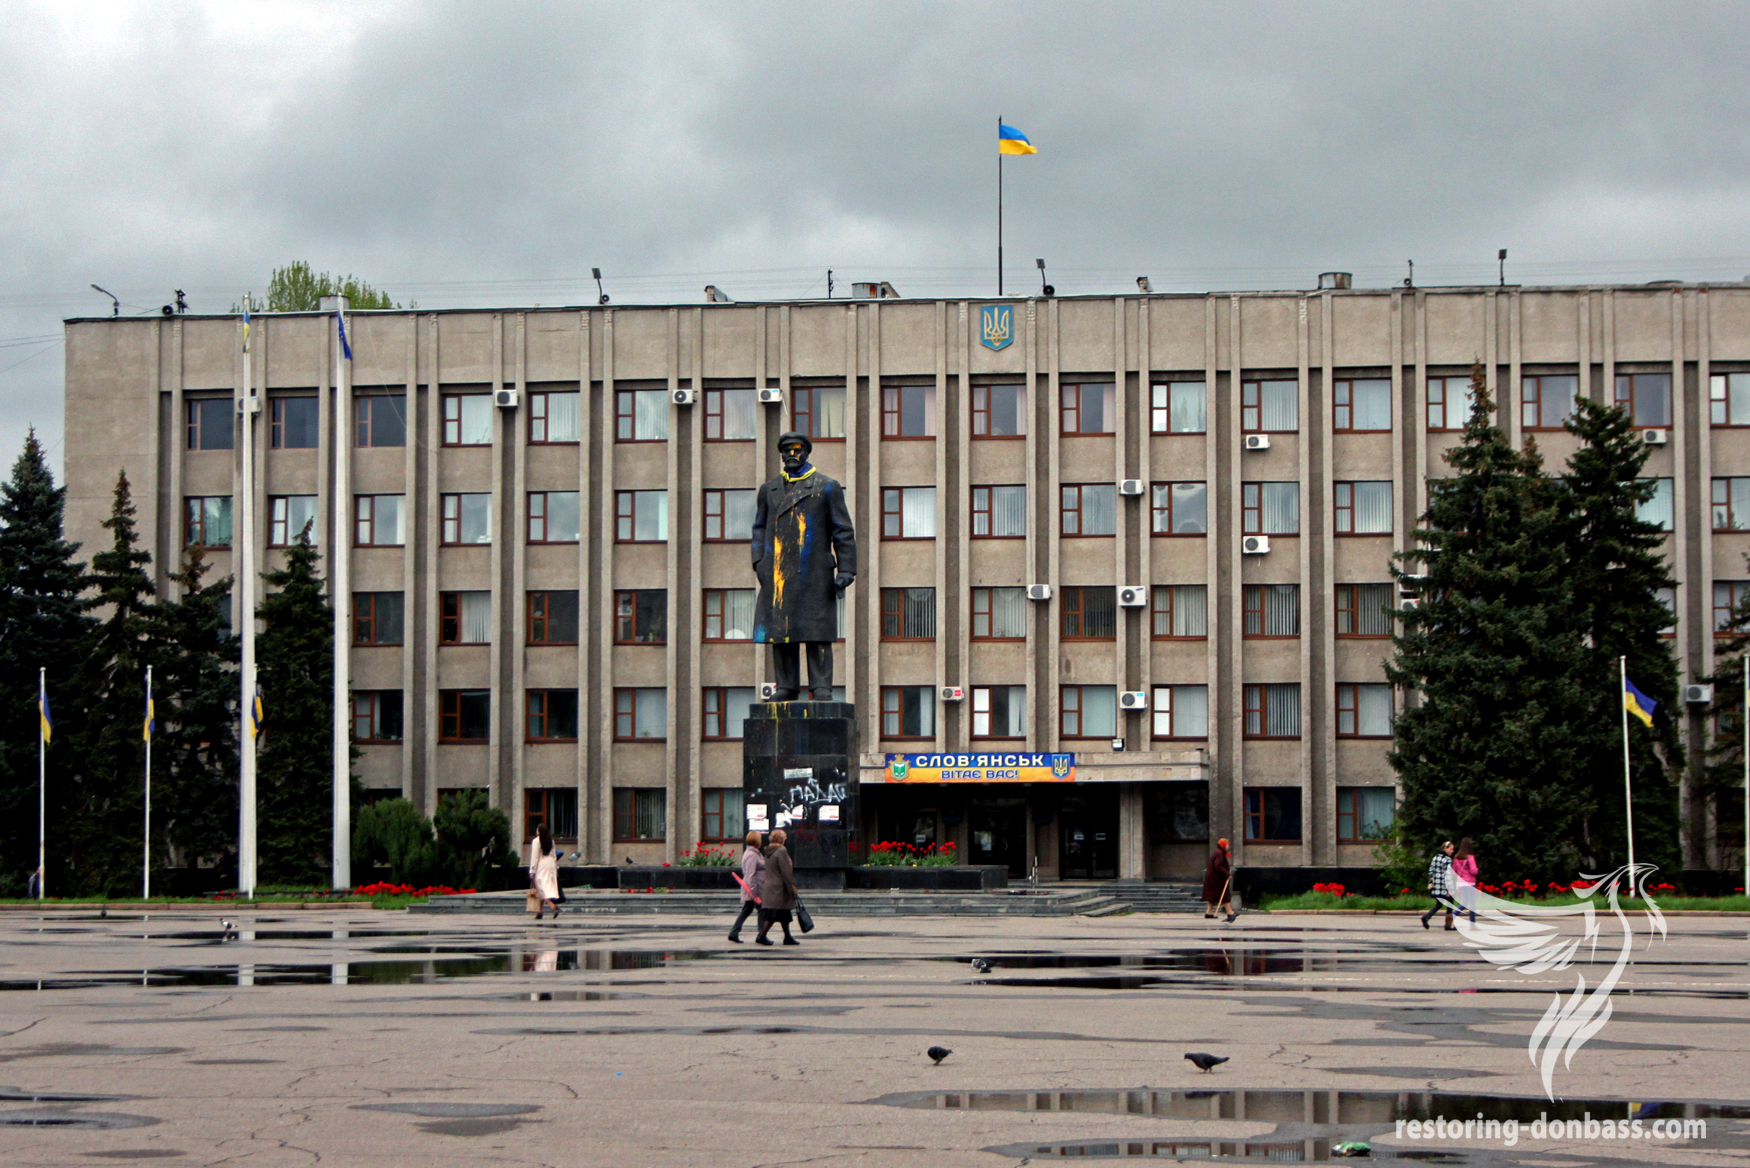 Slavyansk, a year after the beginning of hostilities, May 15, 2015